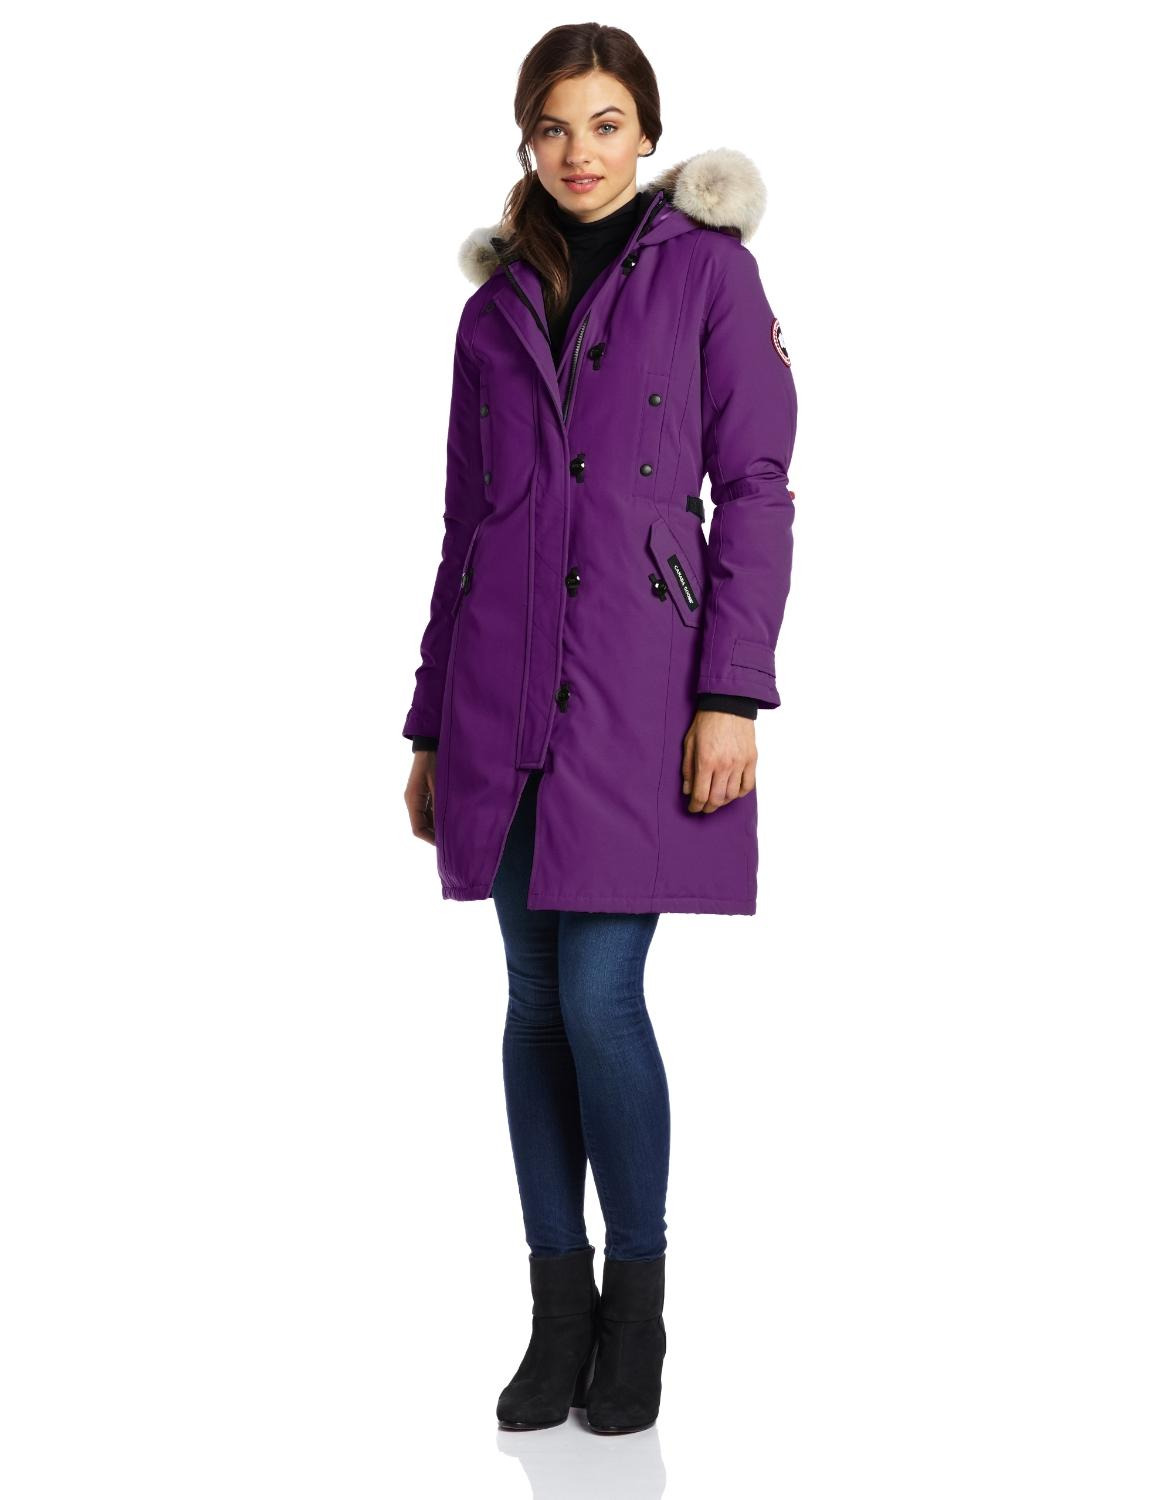 Up to 55% Off Canada Goose Outwear